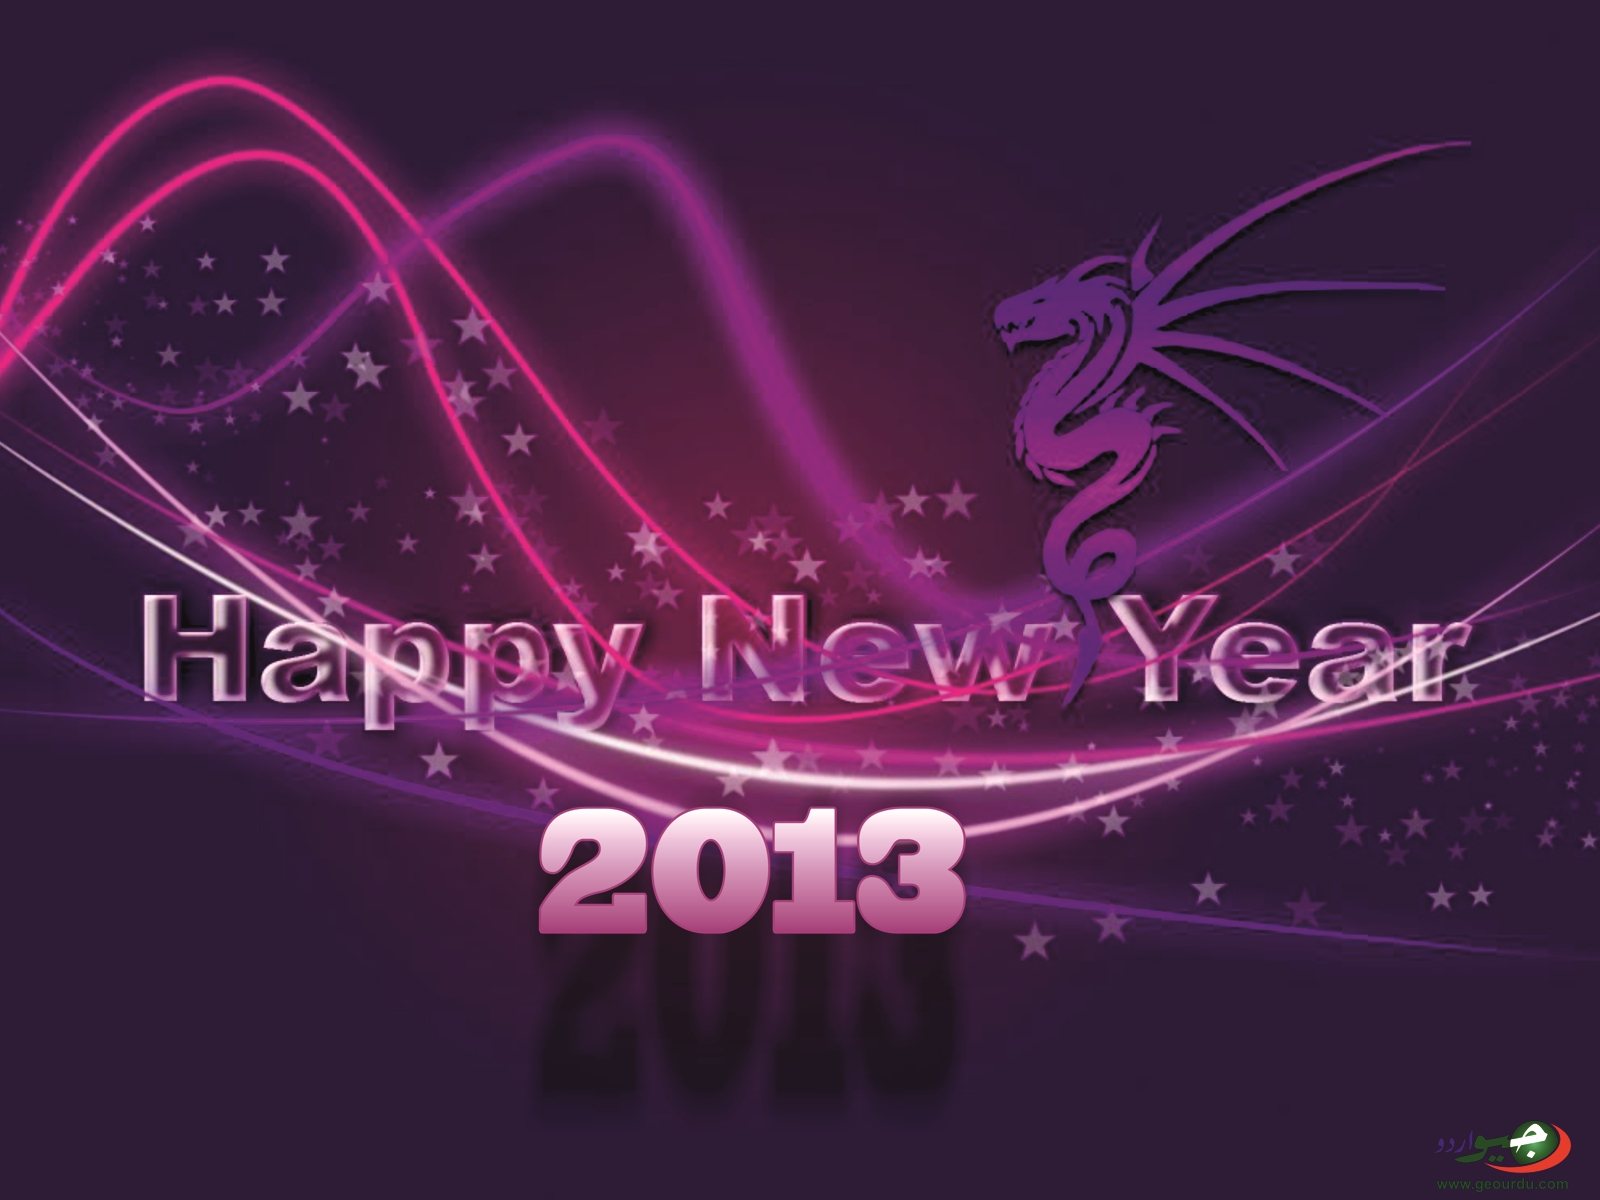 http://3.bp.blogspot.com/-Rc3ViLSfwS4/UL4NcsPOJPI/AAAAAAAABAM/9NAd6NaVZ_s/s1600/03-Happy-New-Year-2013-HD-Wallpaper.jpg